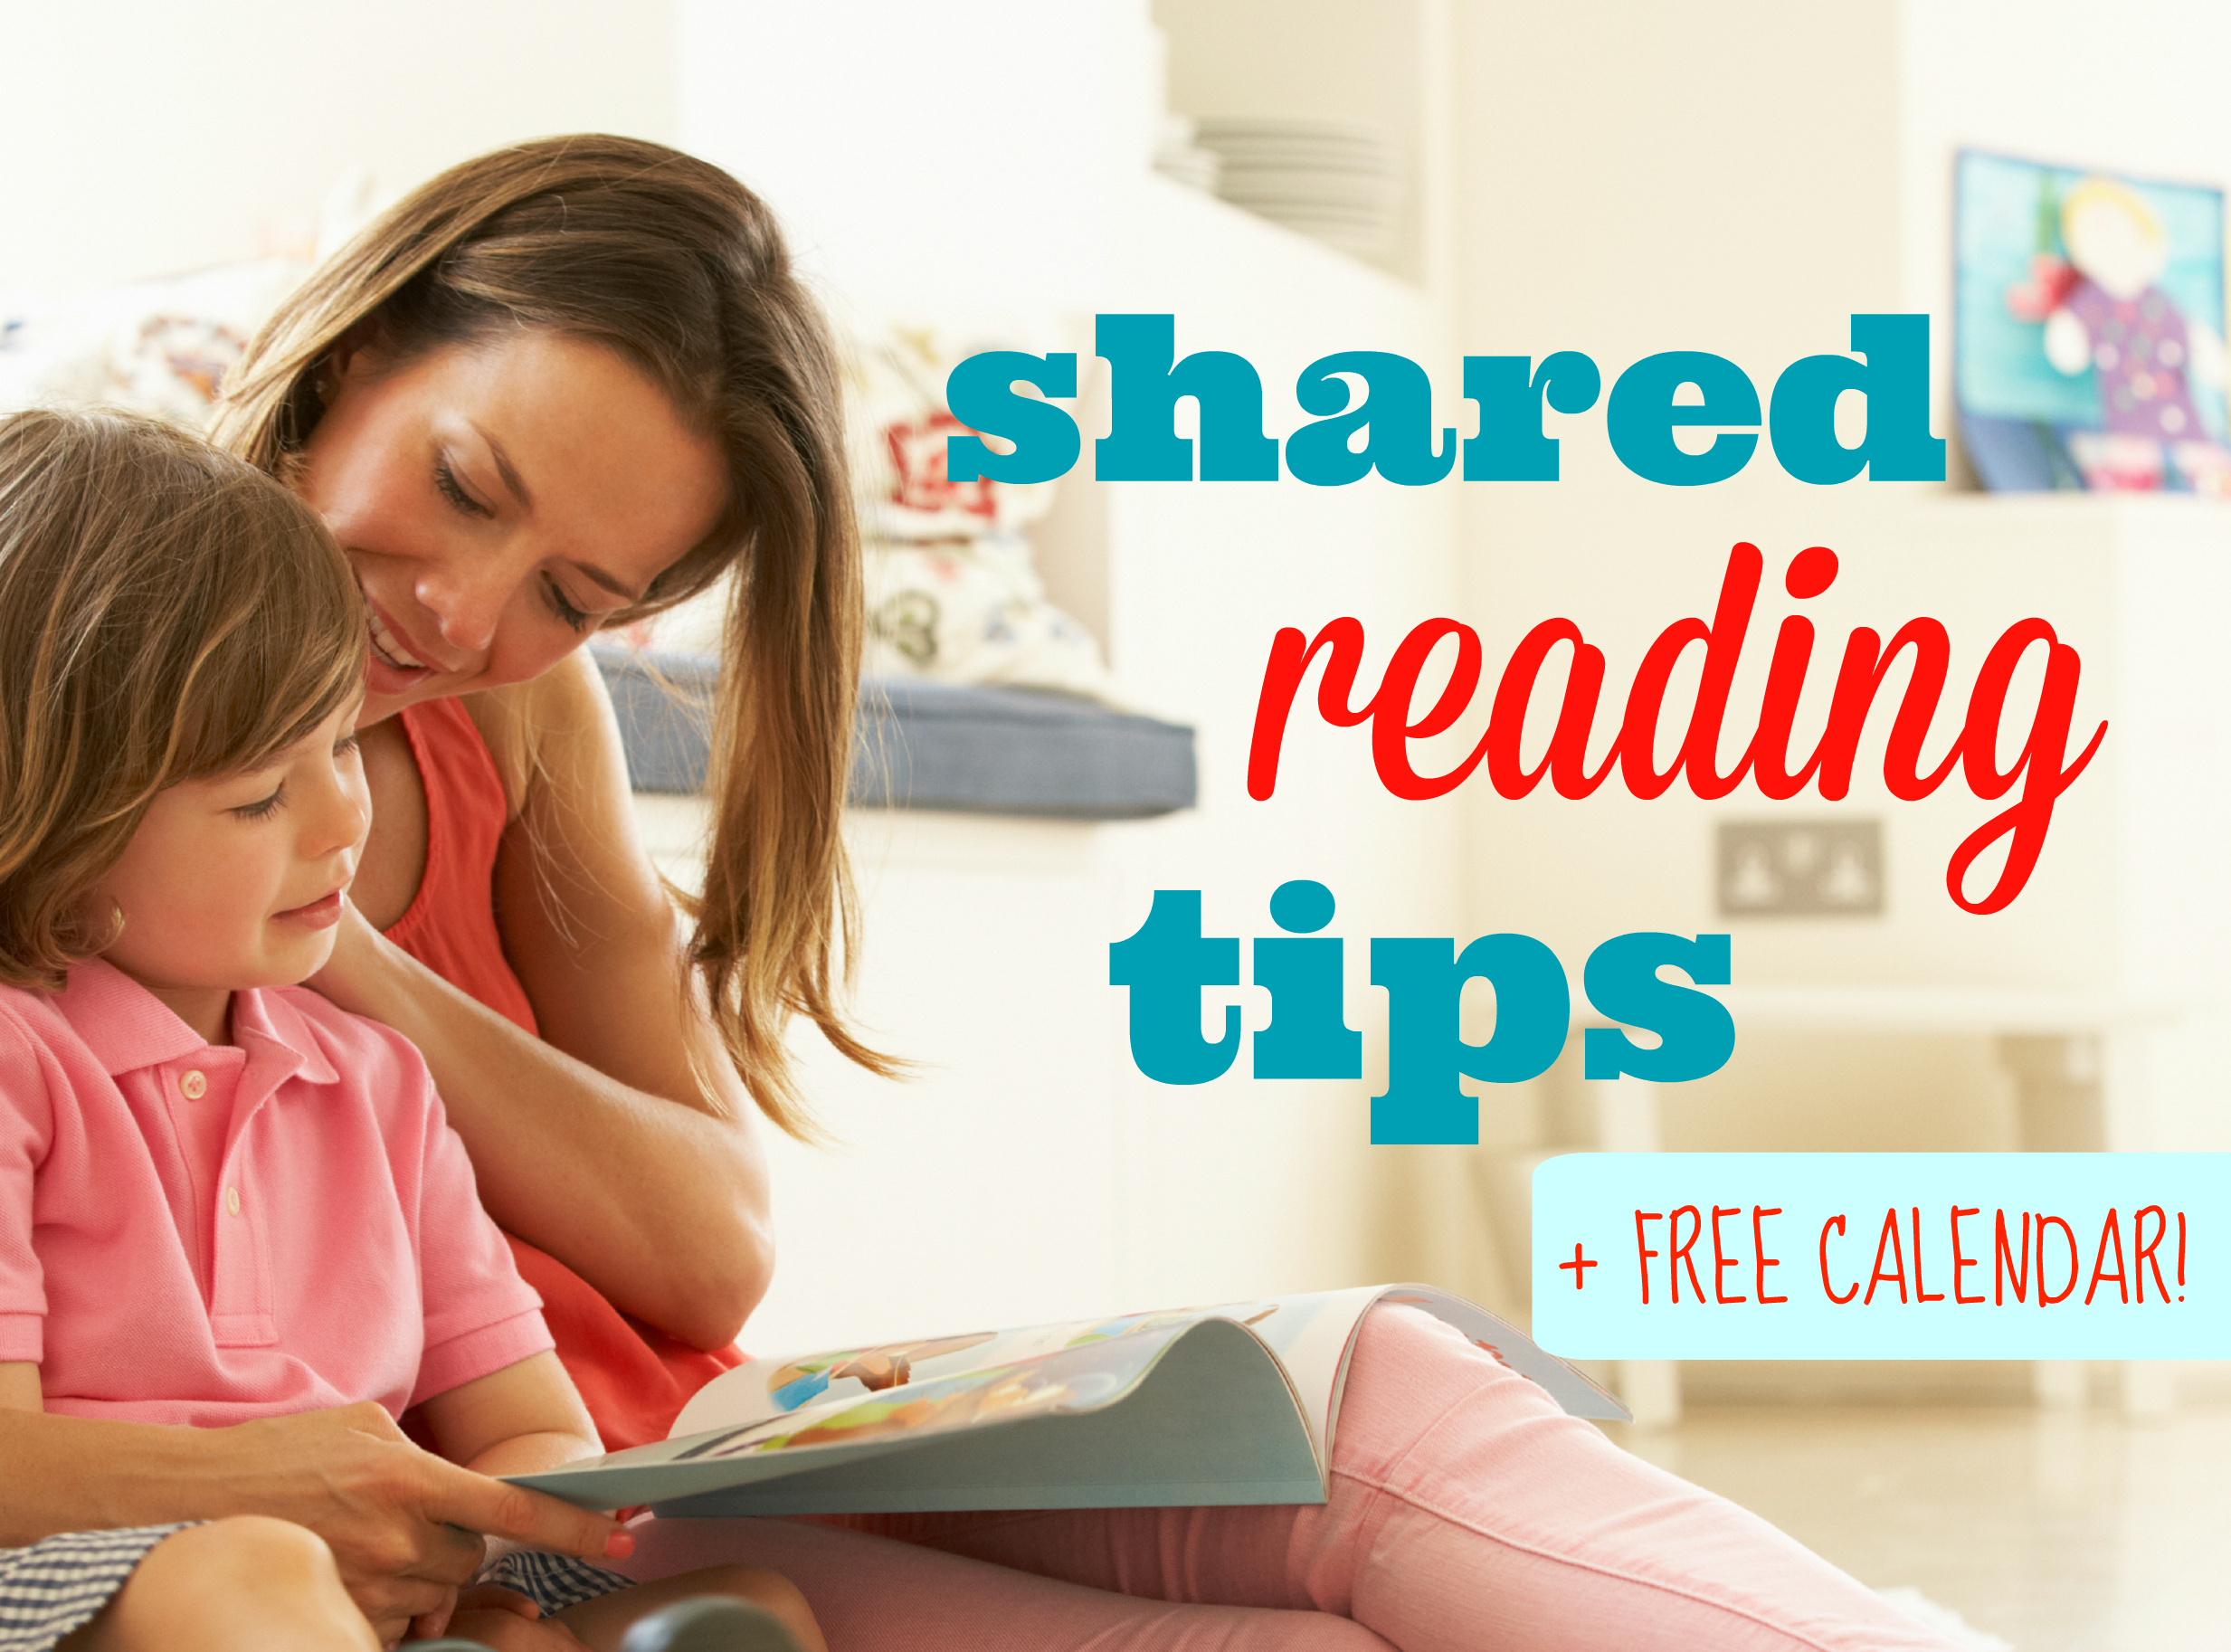 shared reading tips and free calendar